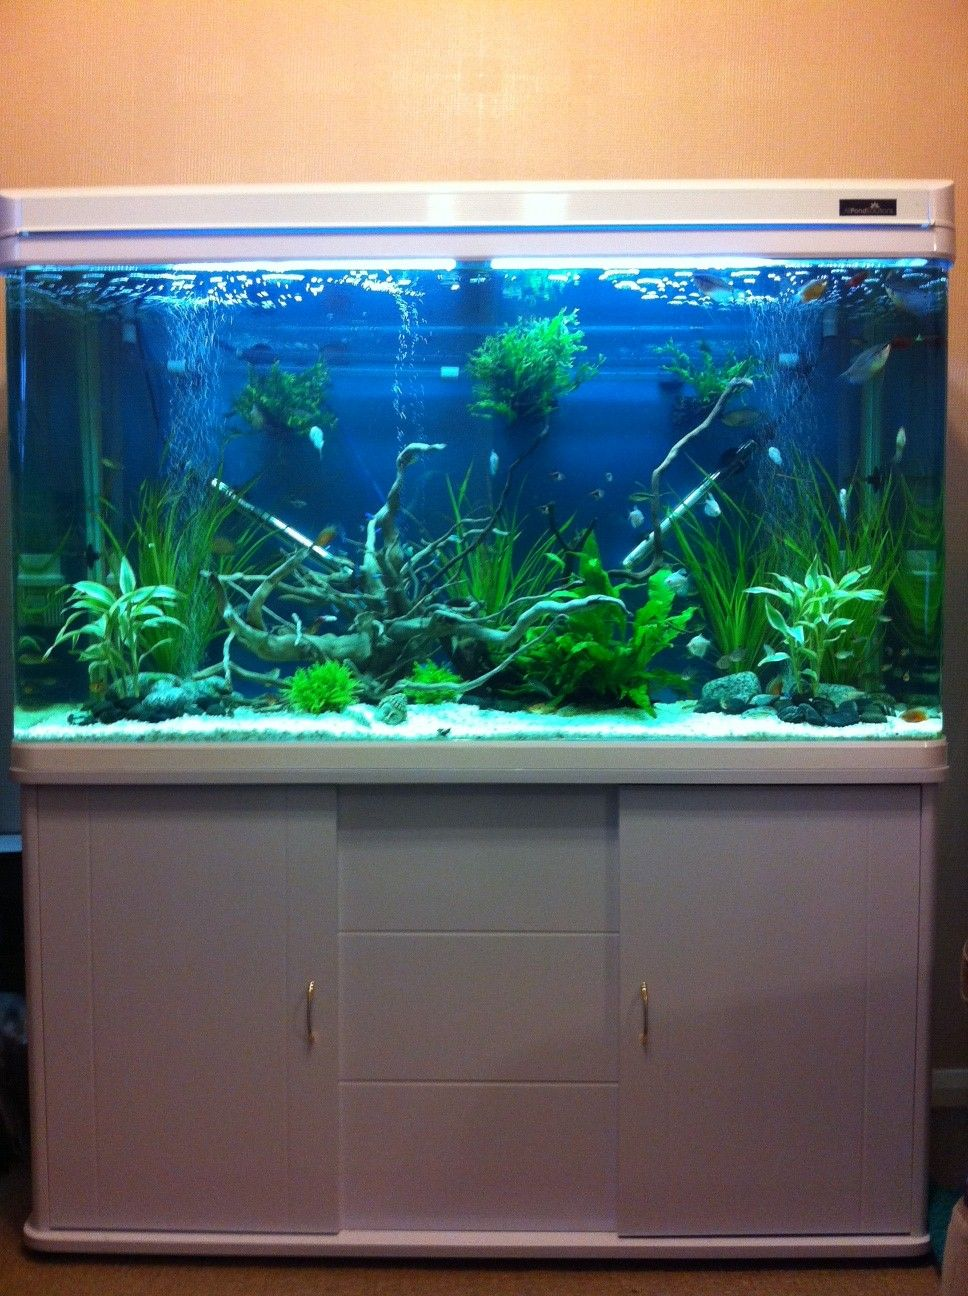 Tropical freshwater aquarium fish uk - Barry S 120cm Cabinet Tank In White Http Www Allpondsolutions Co Uk Cabinetfish